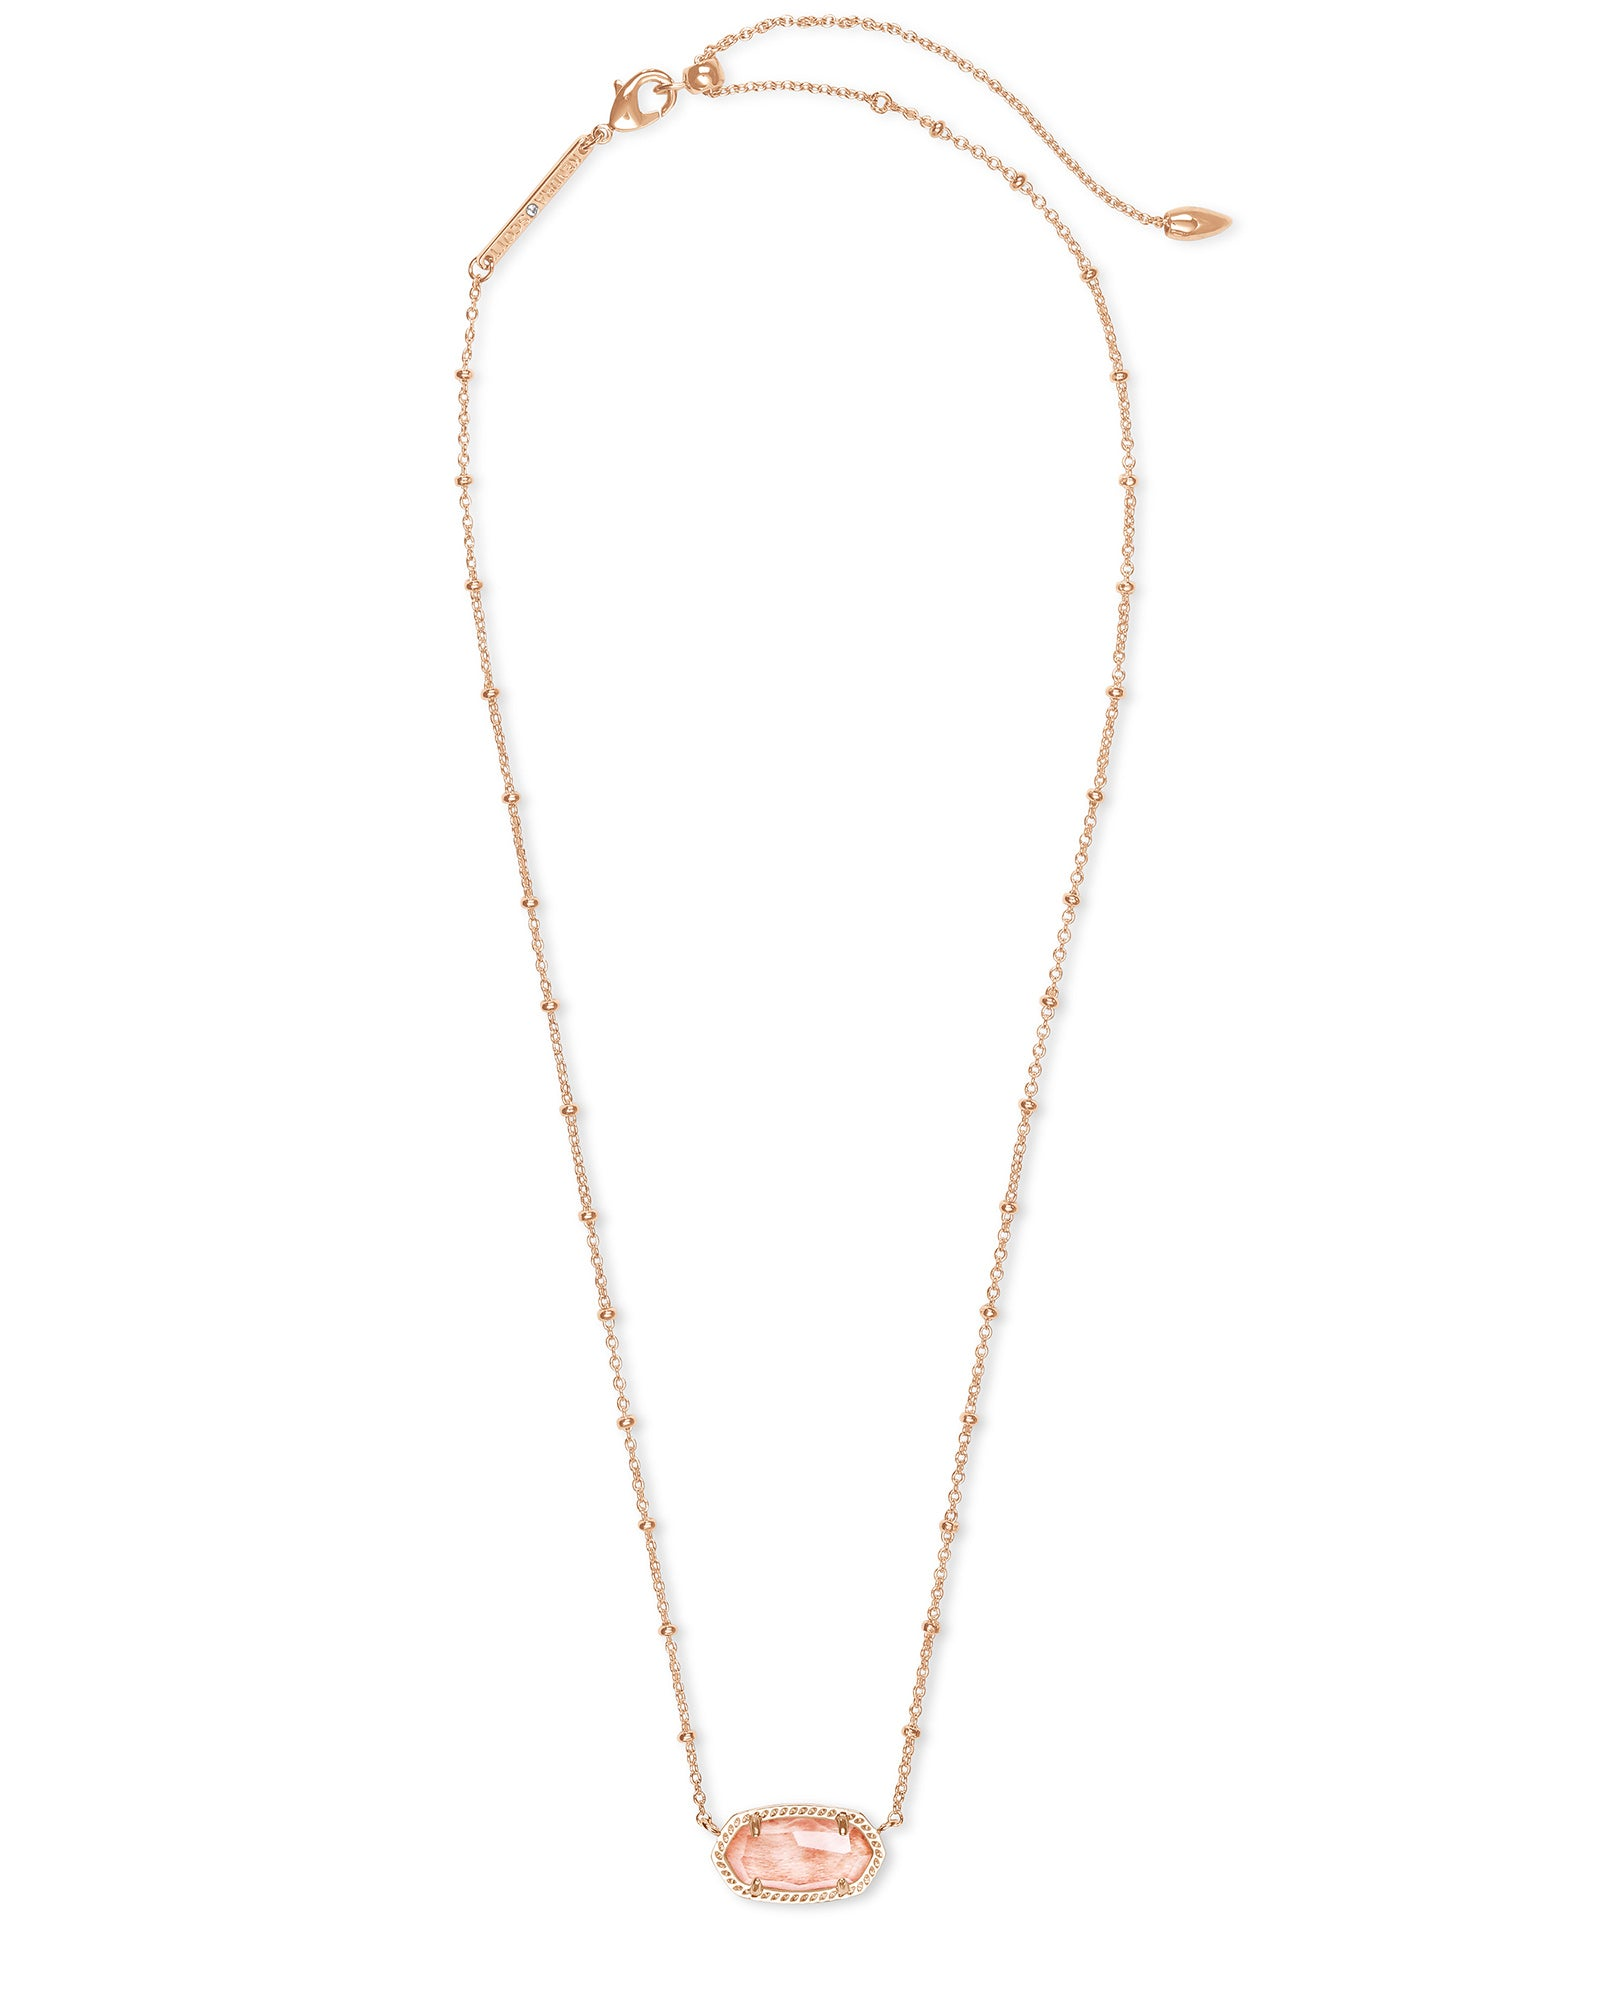 Elisa Rose Gold Necklace in Blush Wood